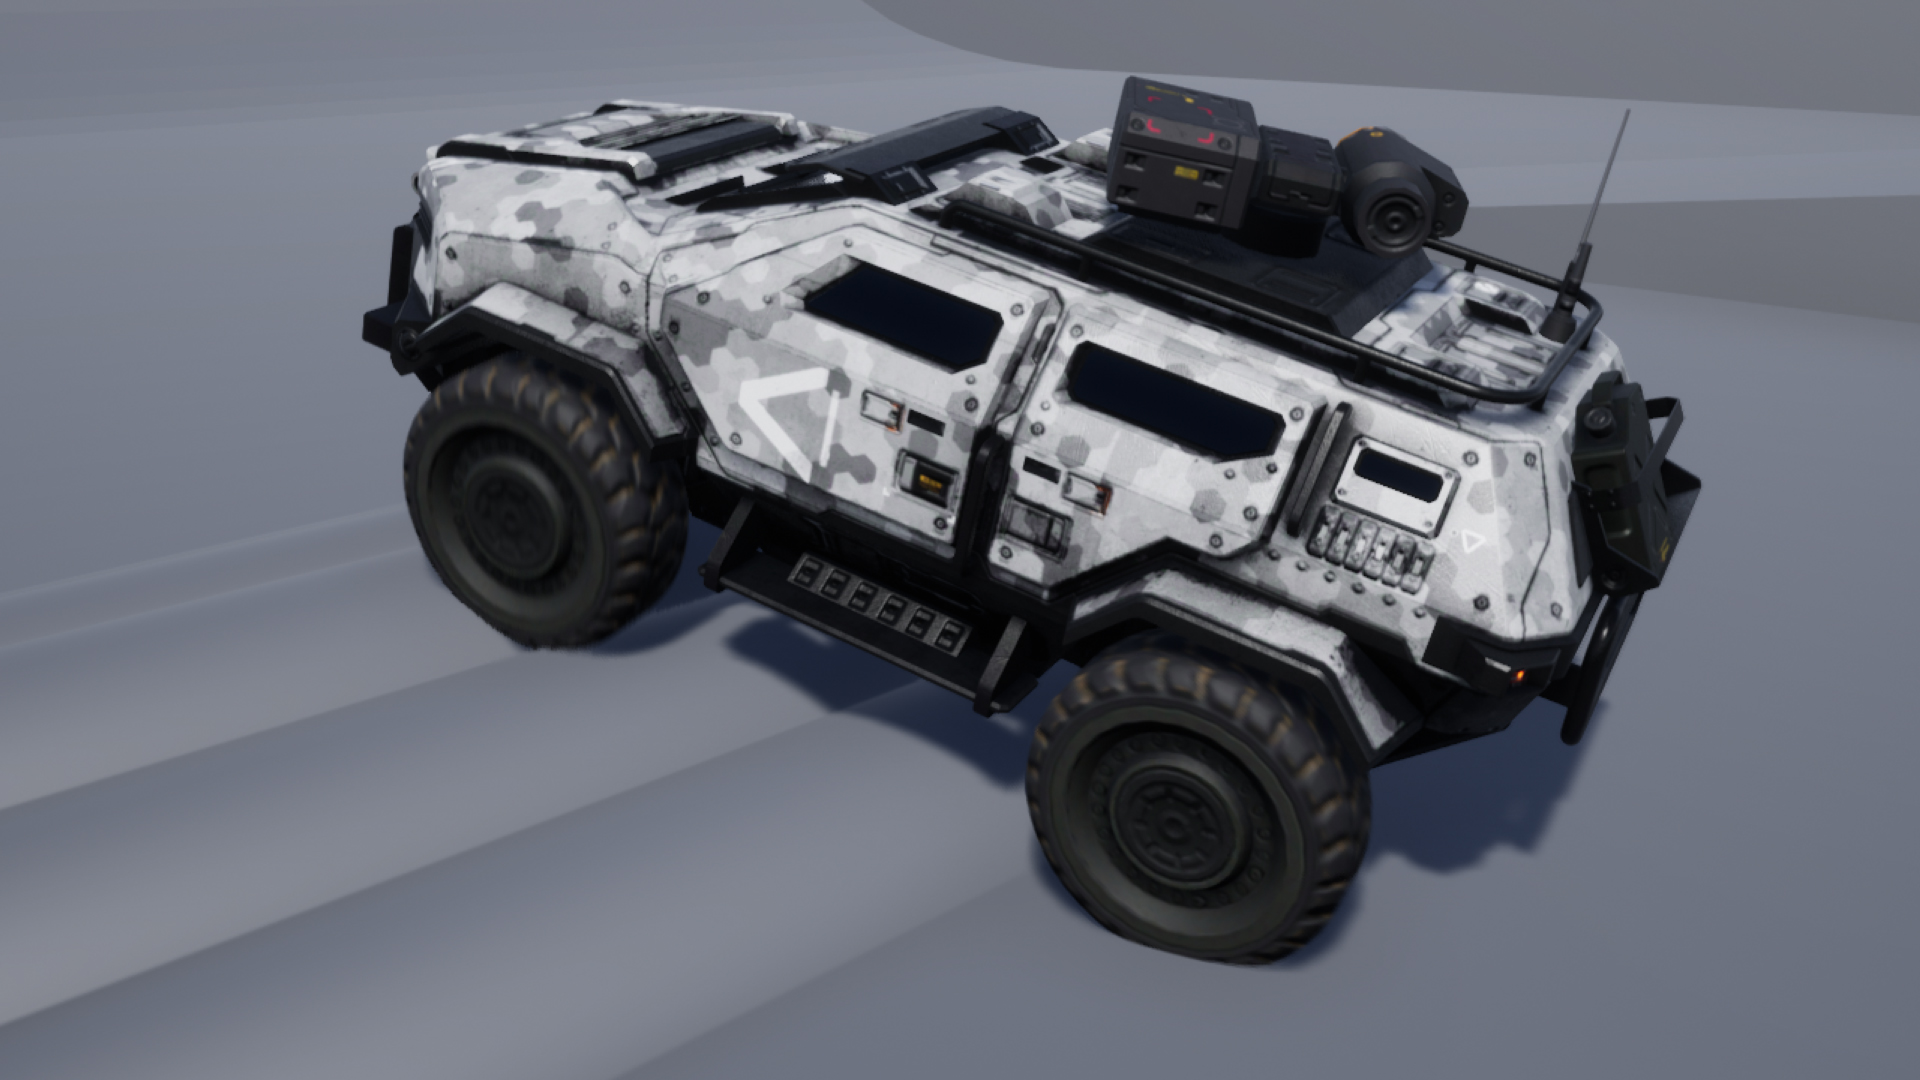 Scifi Military Car In Props Ue Marketplace